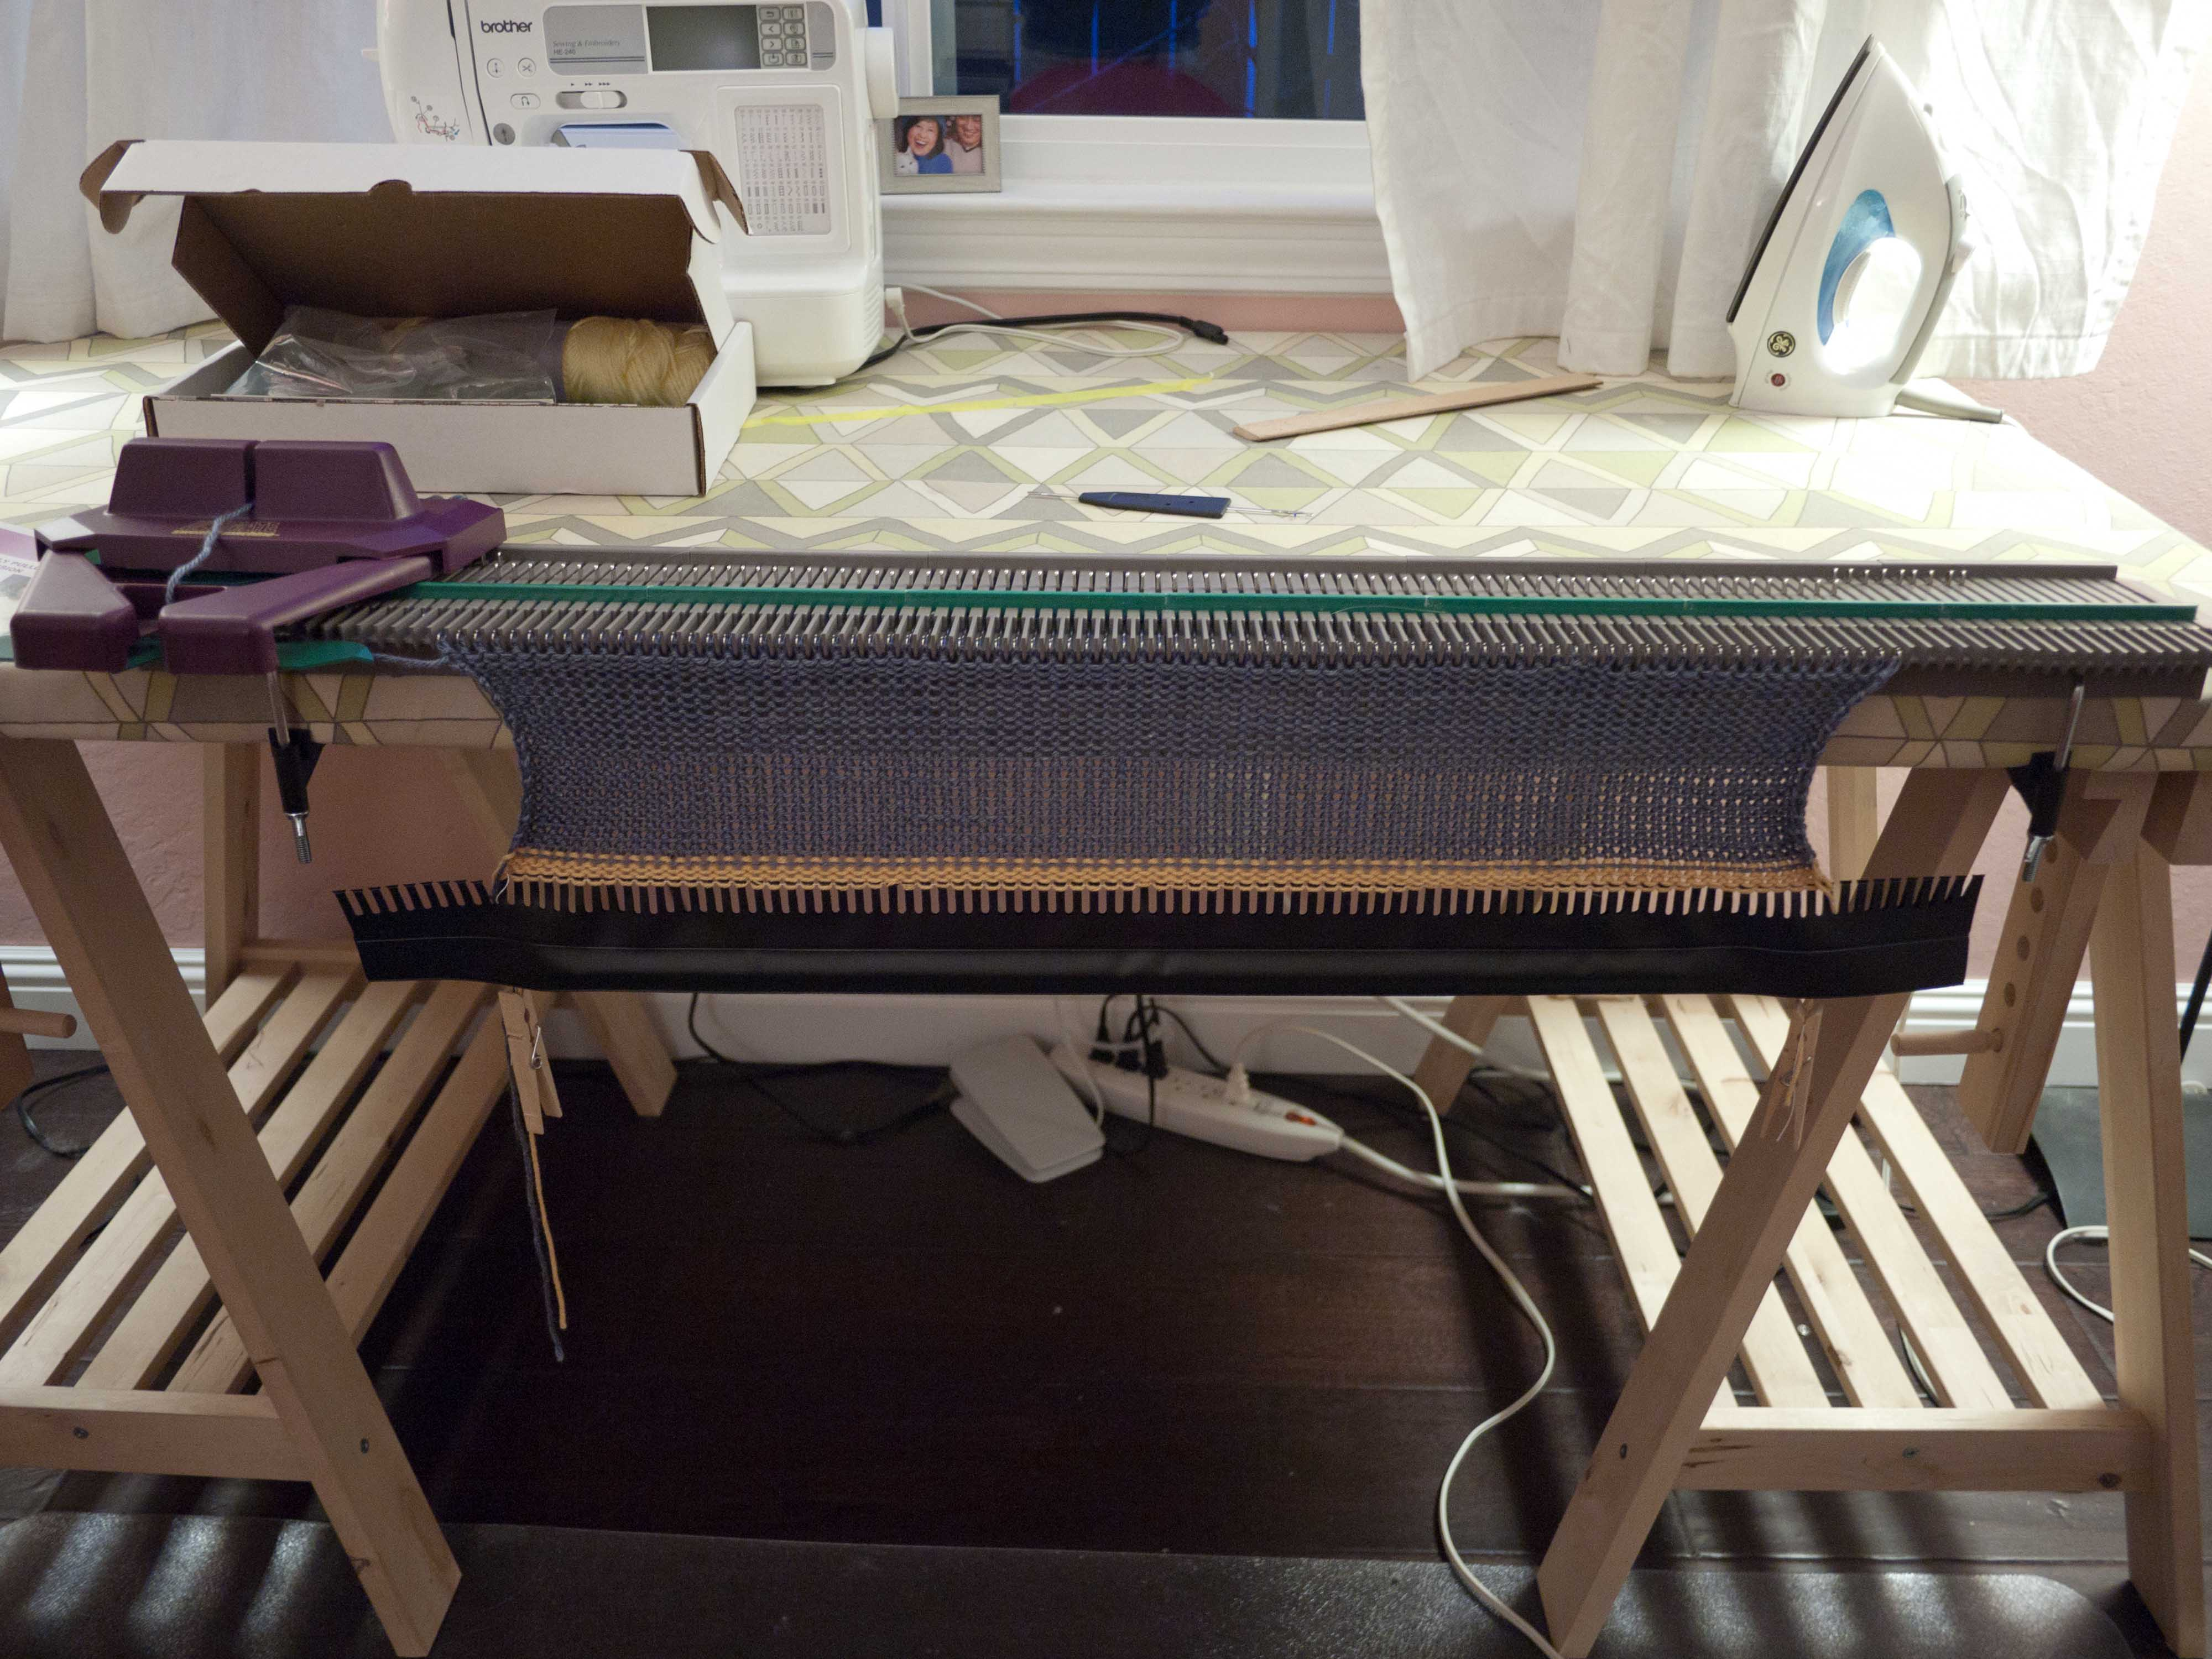 Bond knitting machine pattern petite republic my new toy is a knitting machine i had been looking for one on craigslist for forever one of those nice brother ones for less than a hundred bankloansurffo Image collections